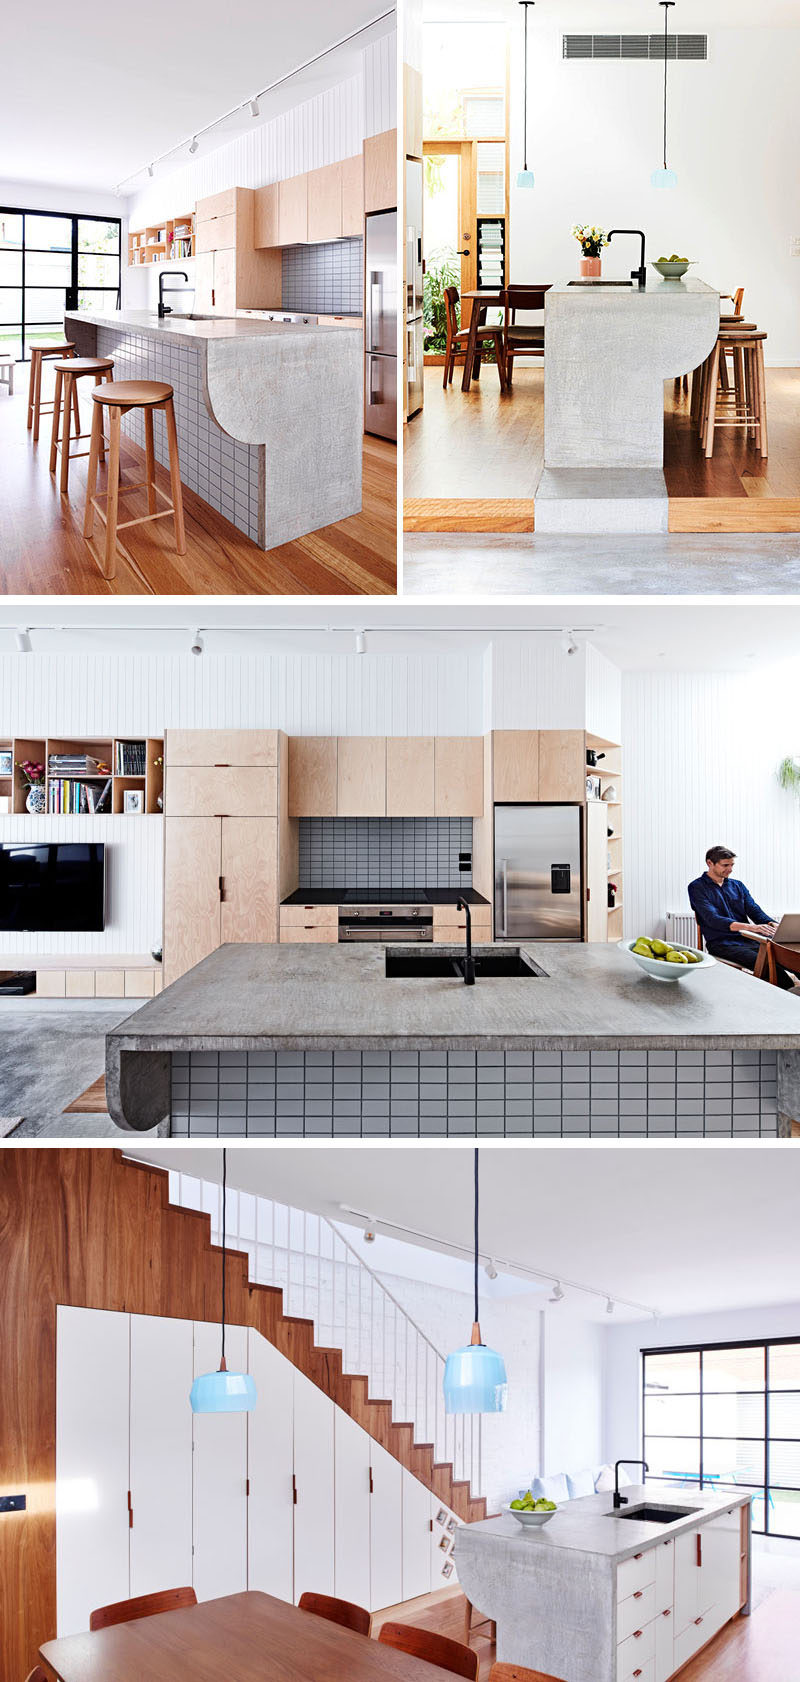 11 Creative Concrete Countertop Designs To Inspire You // The concrete counter of this kitchen island folds over the sides of the island and extends out to create a bar counter.